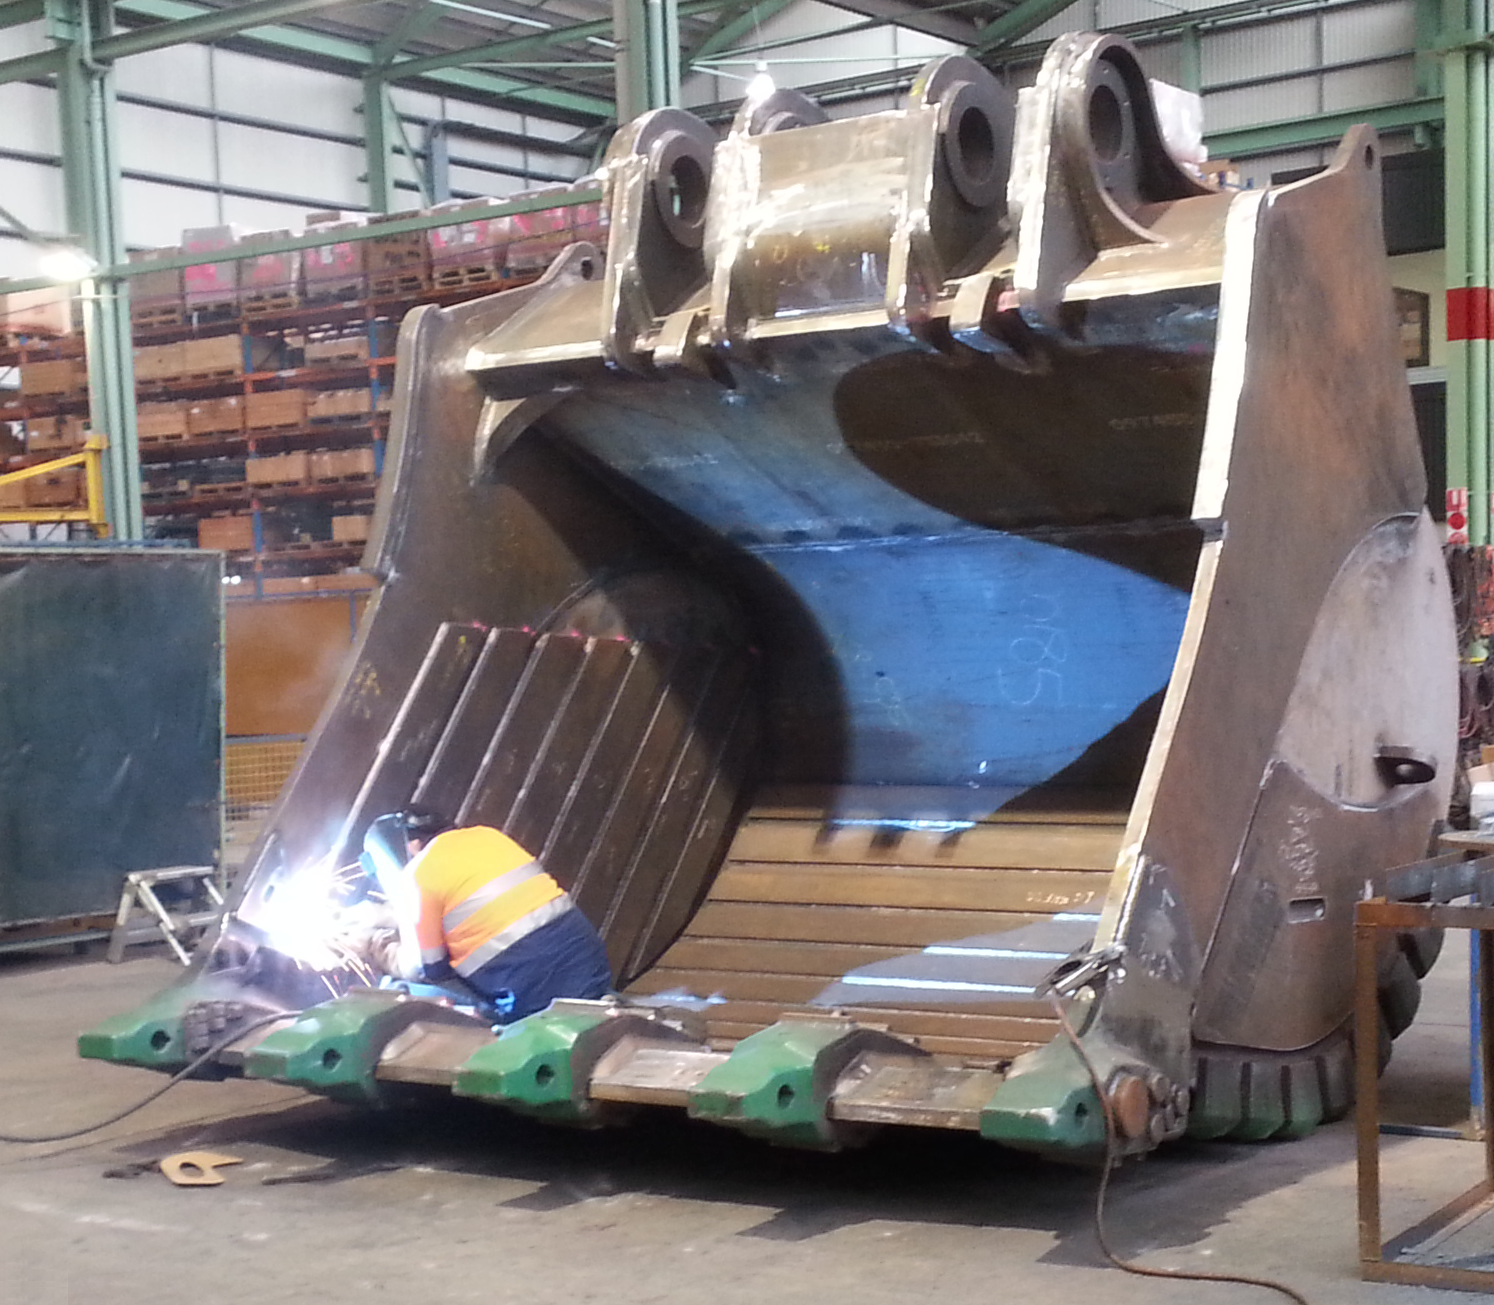 Open Welding - Welding machinery onsite